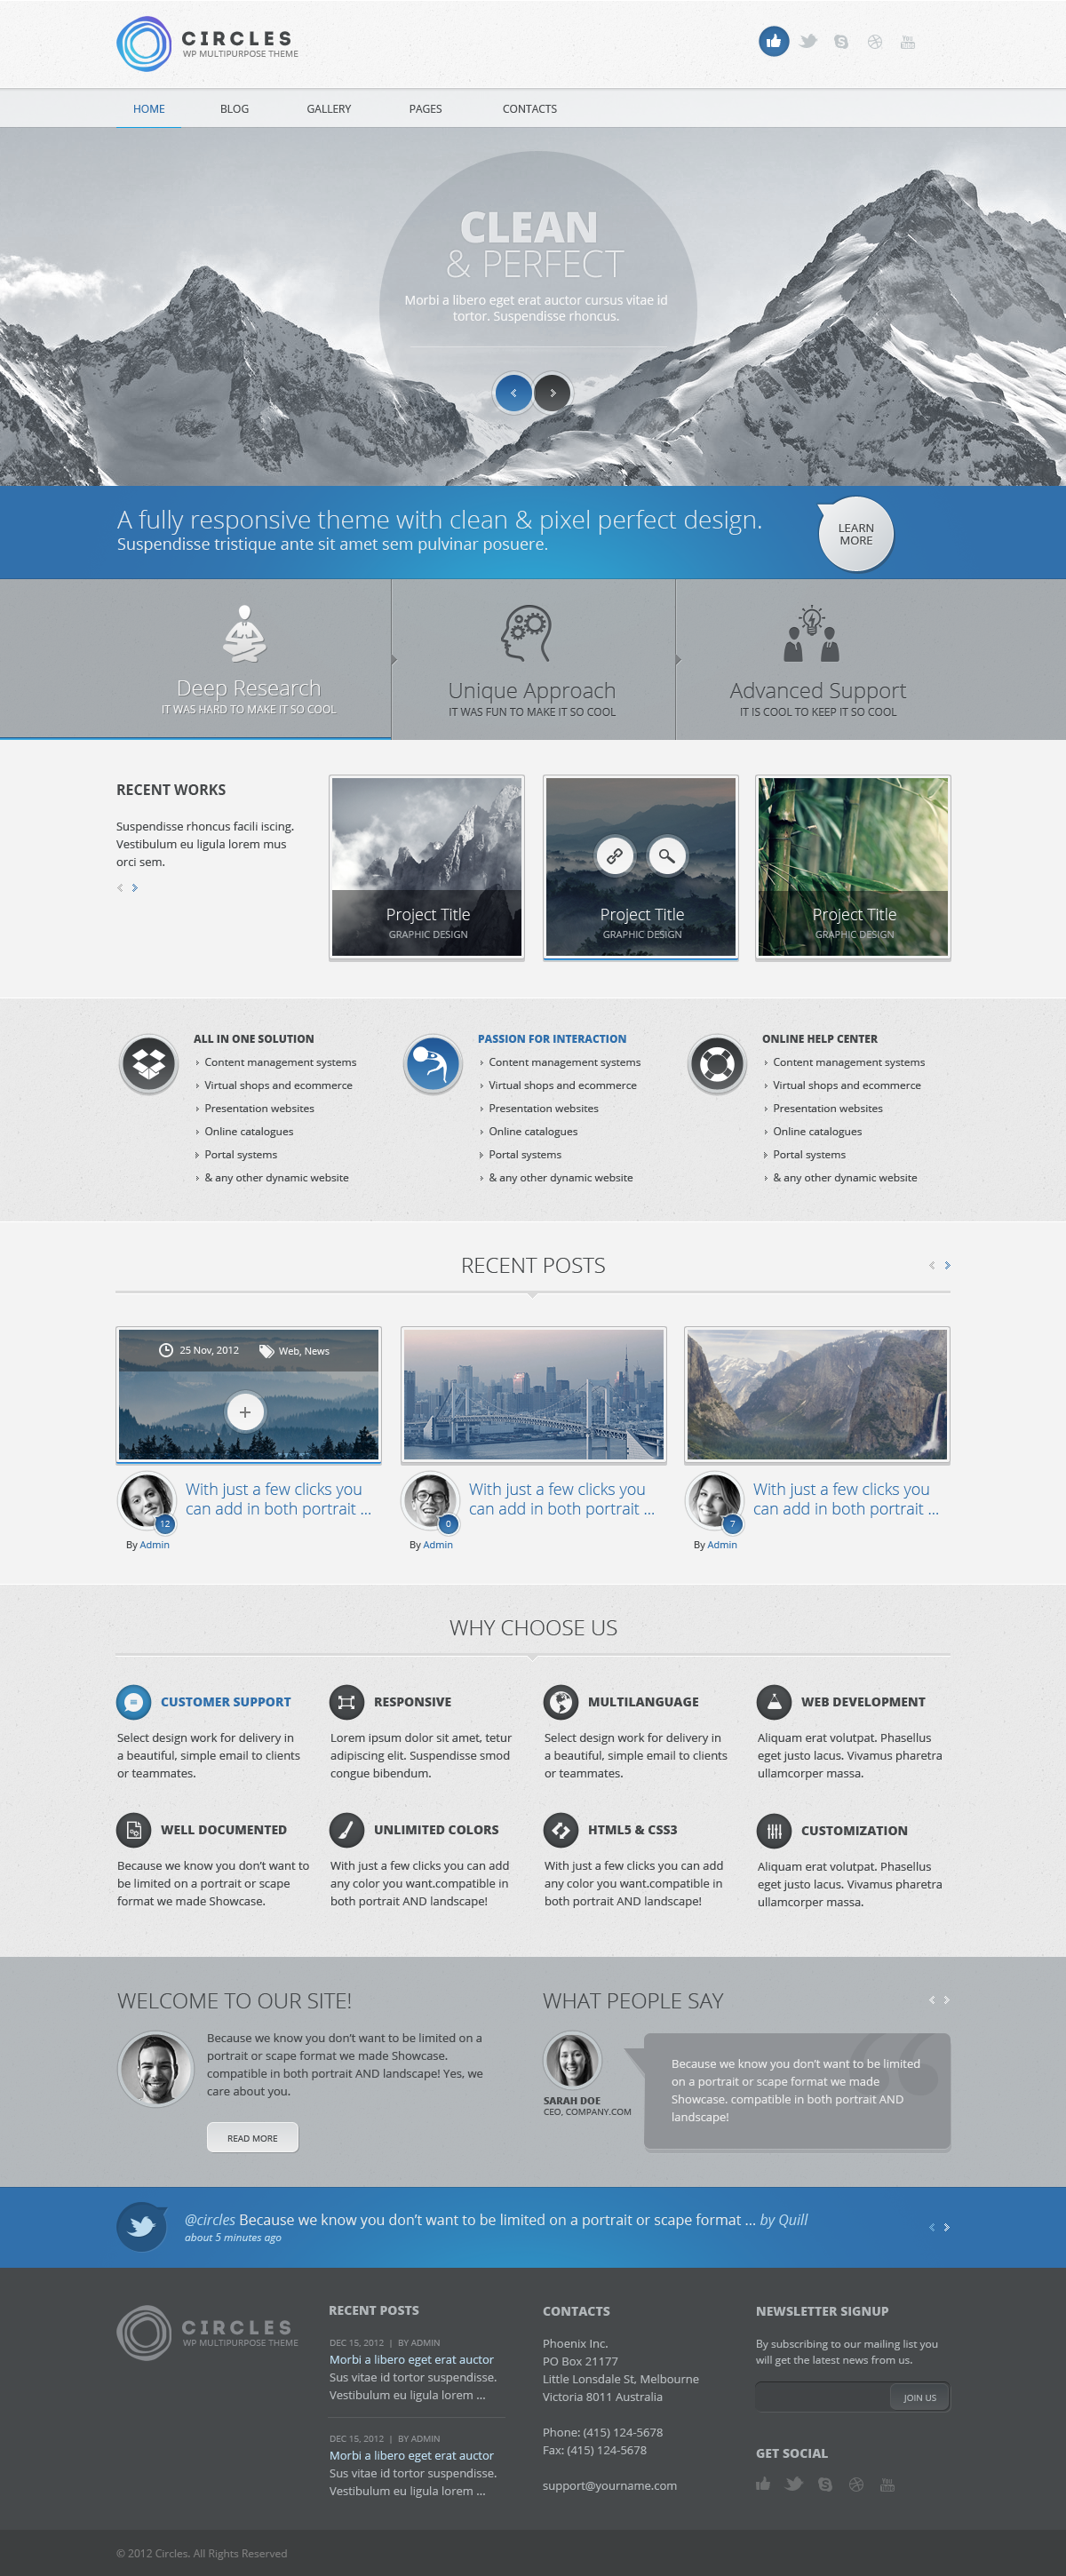 Circles PSD Template   Nice, clean design. Bootstrap would be the obvious choice for implementation of this one.